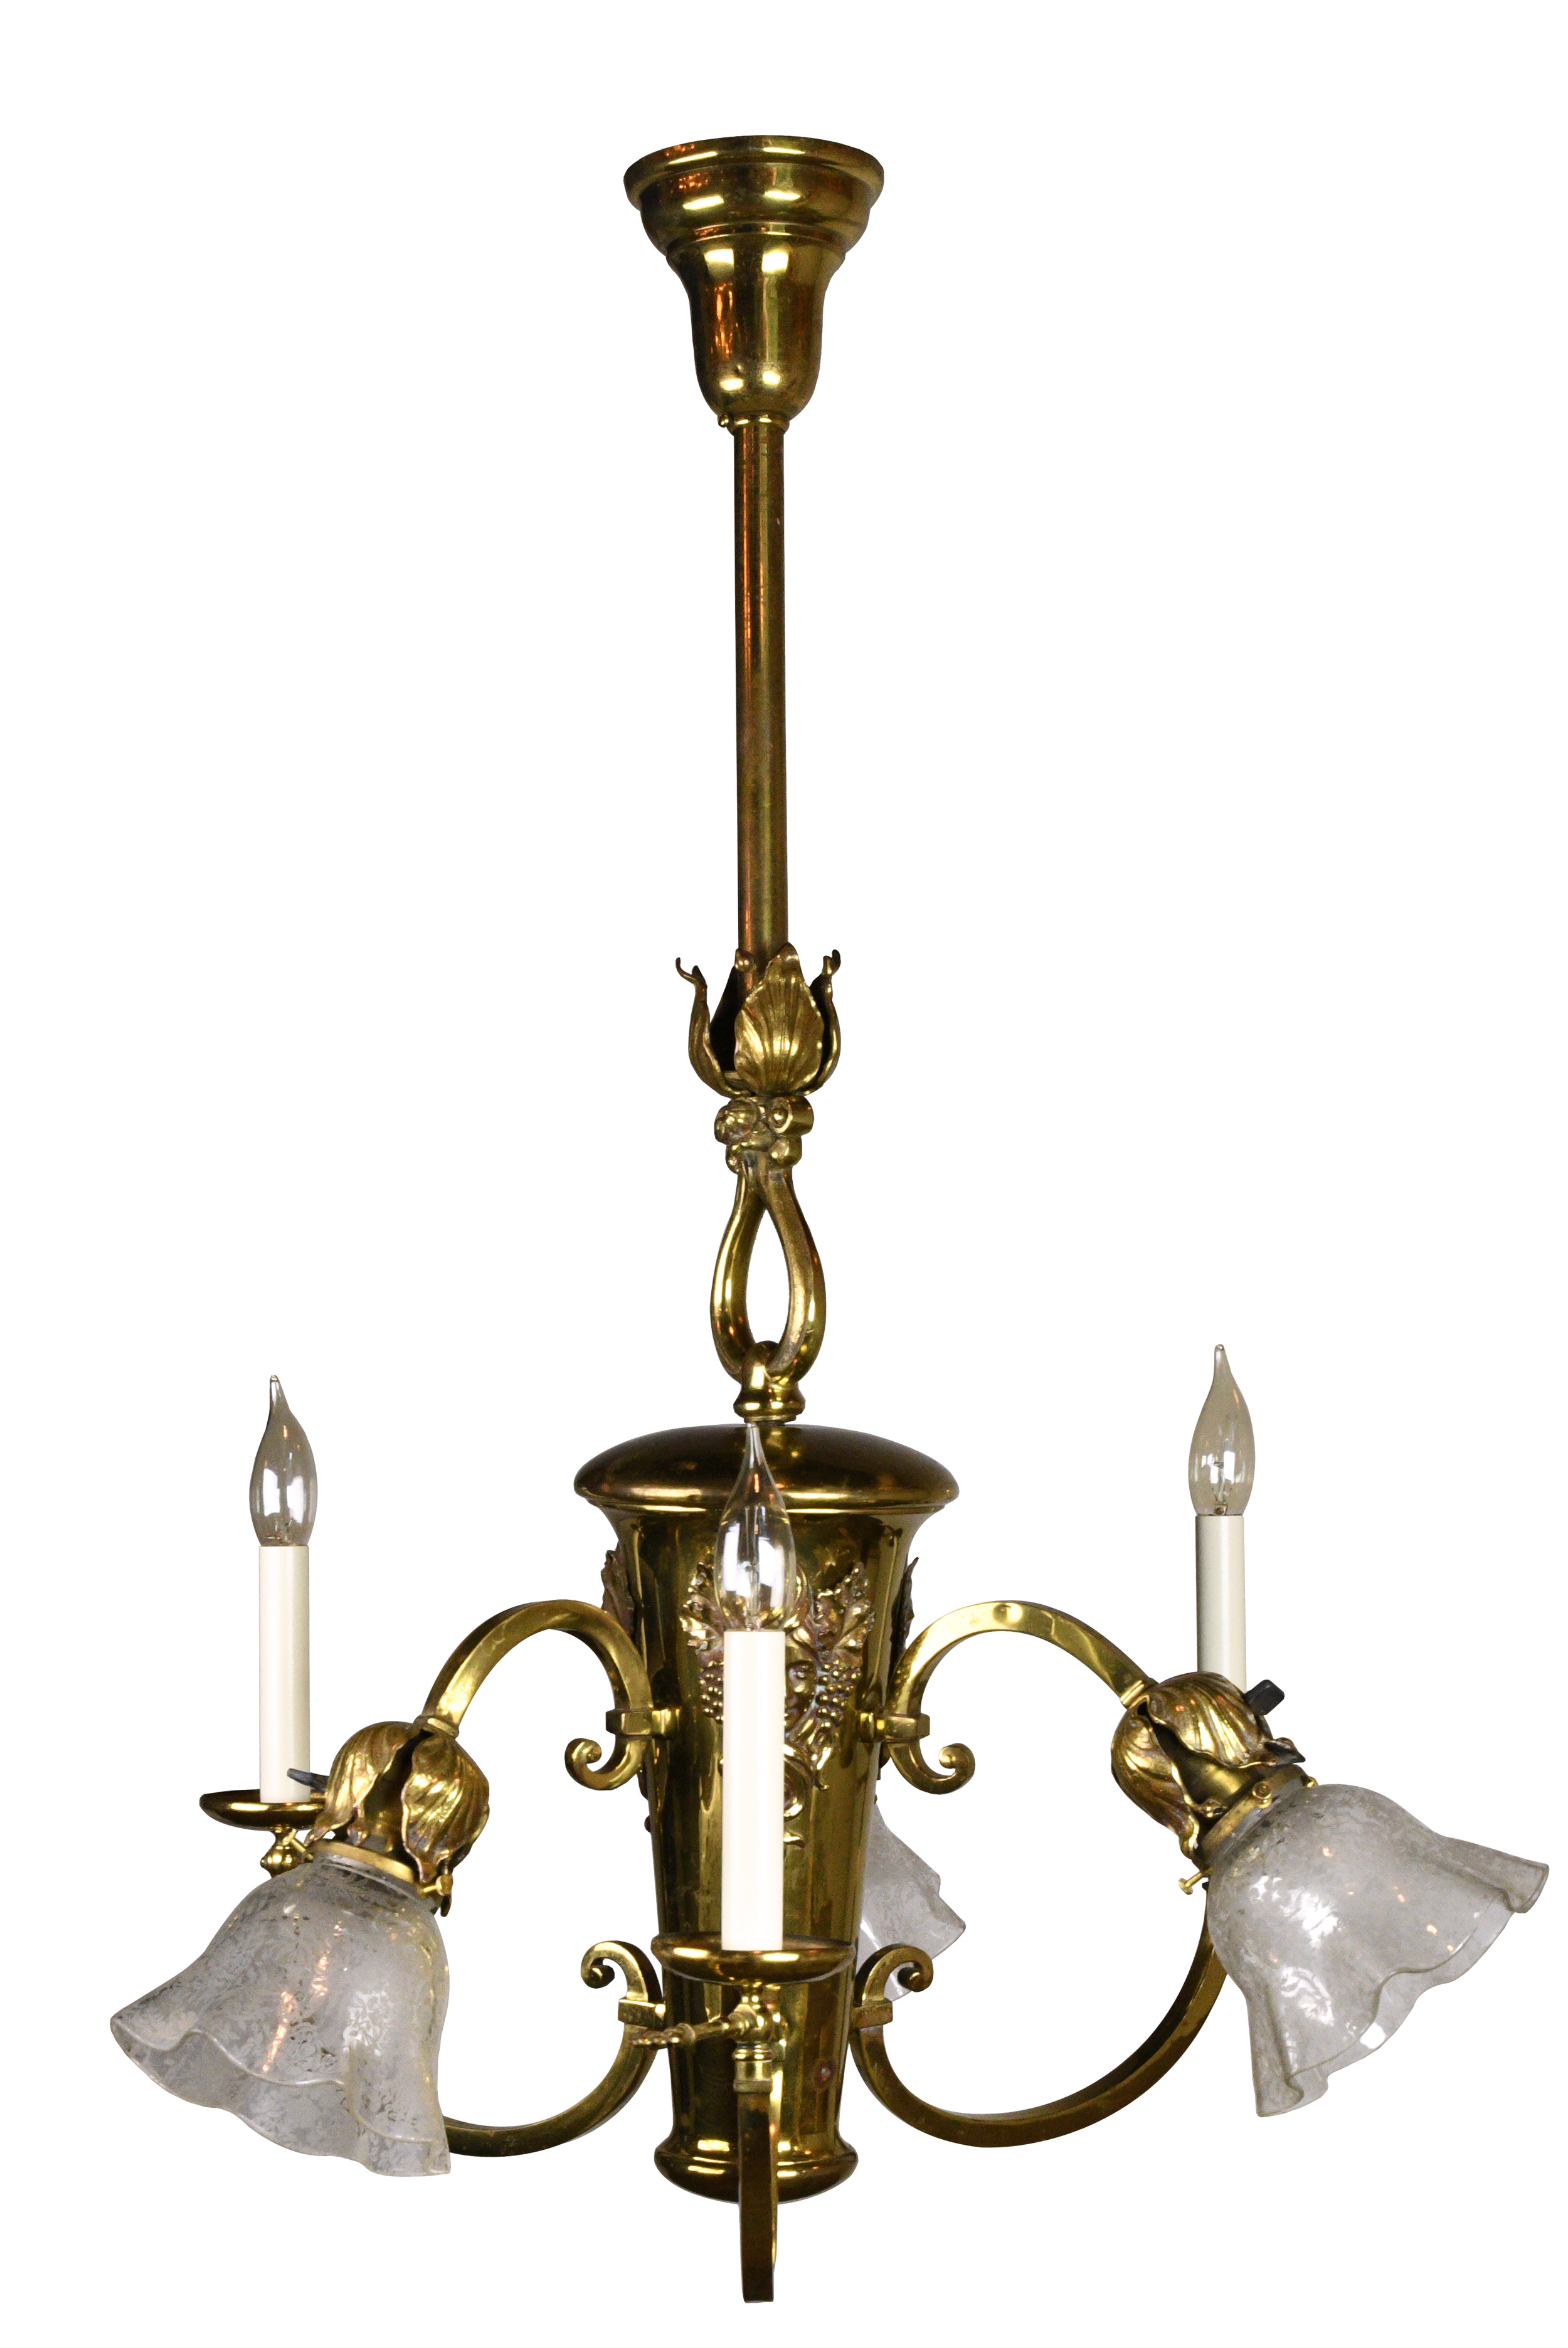 45264-brass-chandelier-with-cameos-MAIN.jpg